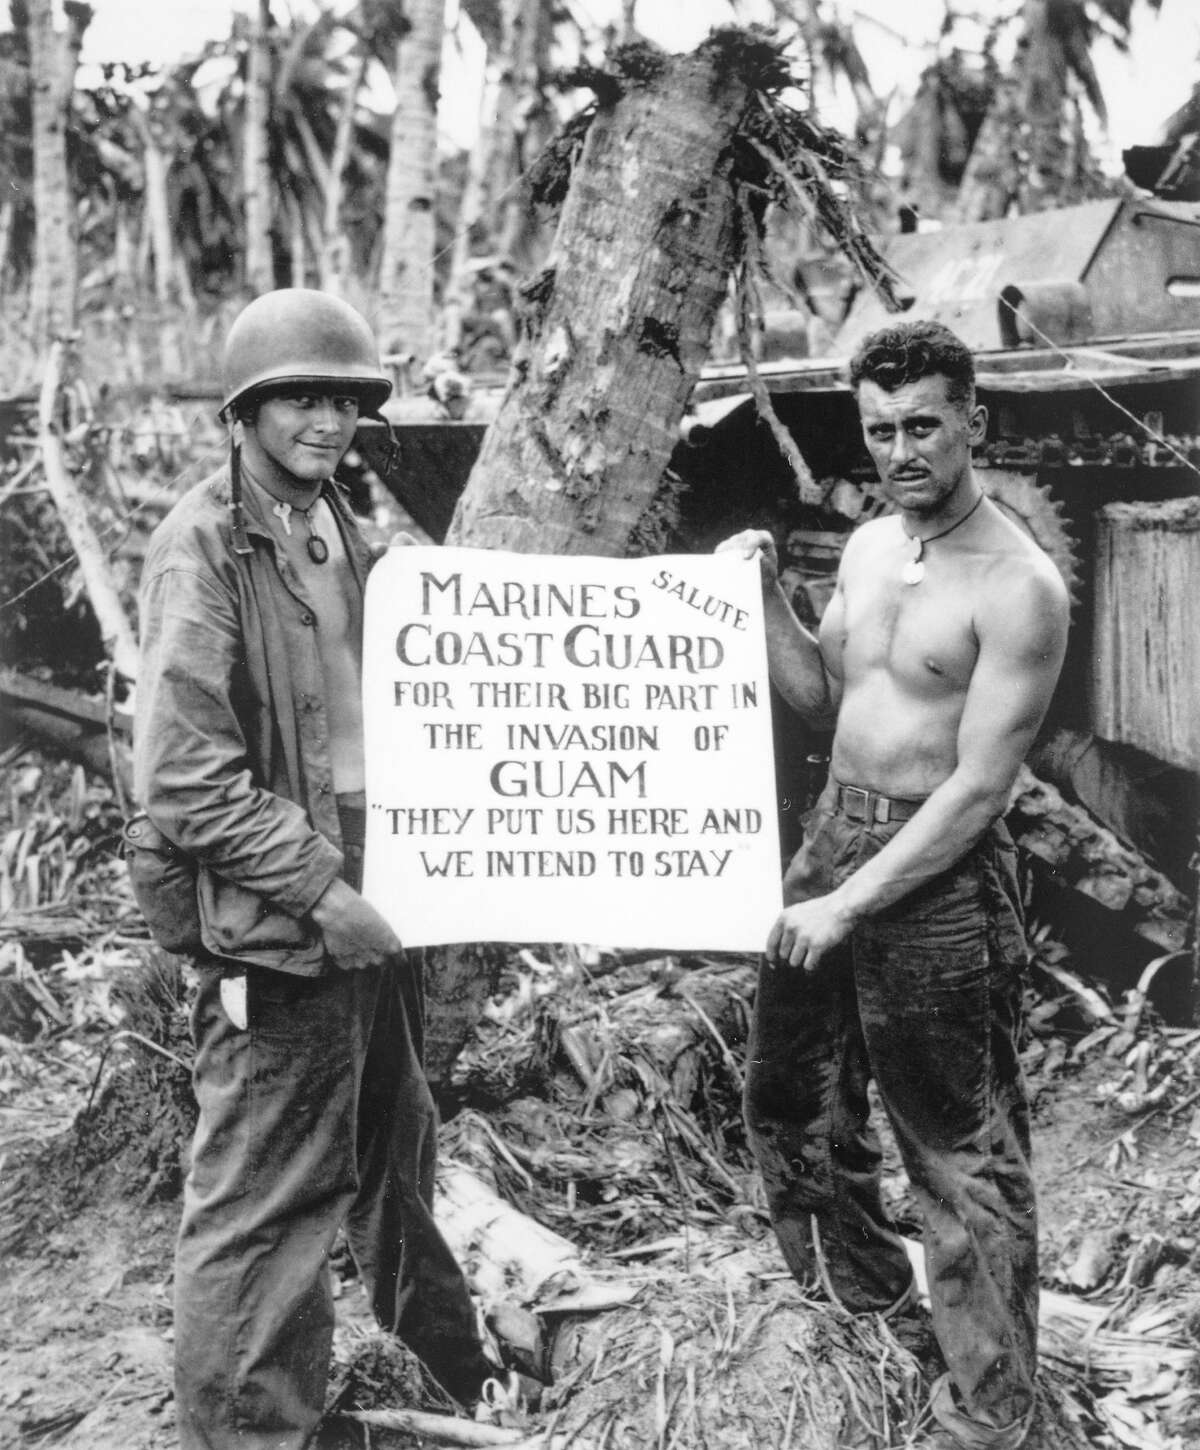 """Two U.S. Marines hold up a sign saluting the efforts of the U.S. Coast Guard during the Second Battle of Guam, August 1944. The sign reads """"Marines Salute Coast Guard for their Big Part in the Invasion of Guam - they put us here and we intend to stay."""""""